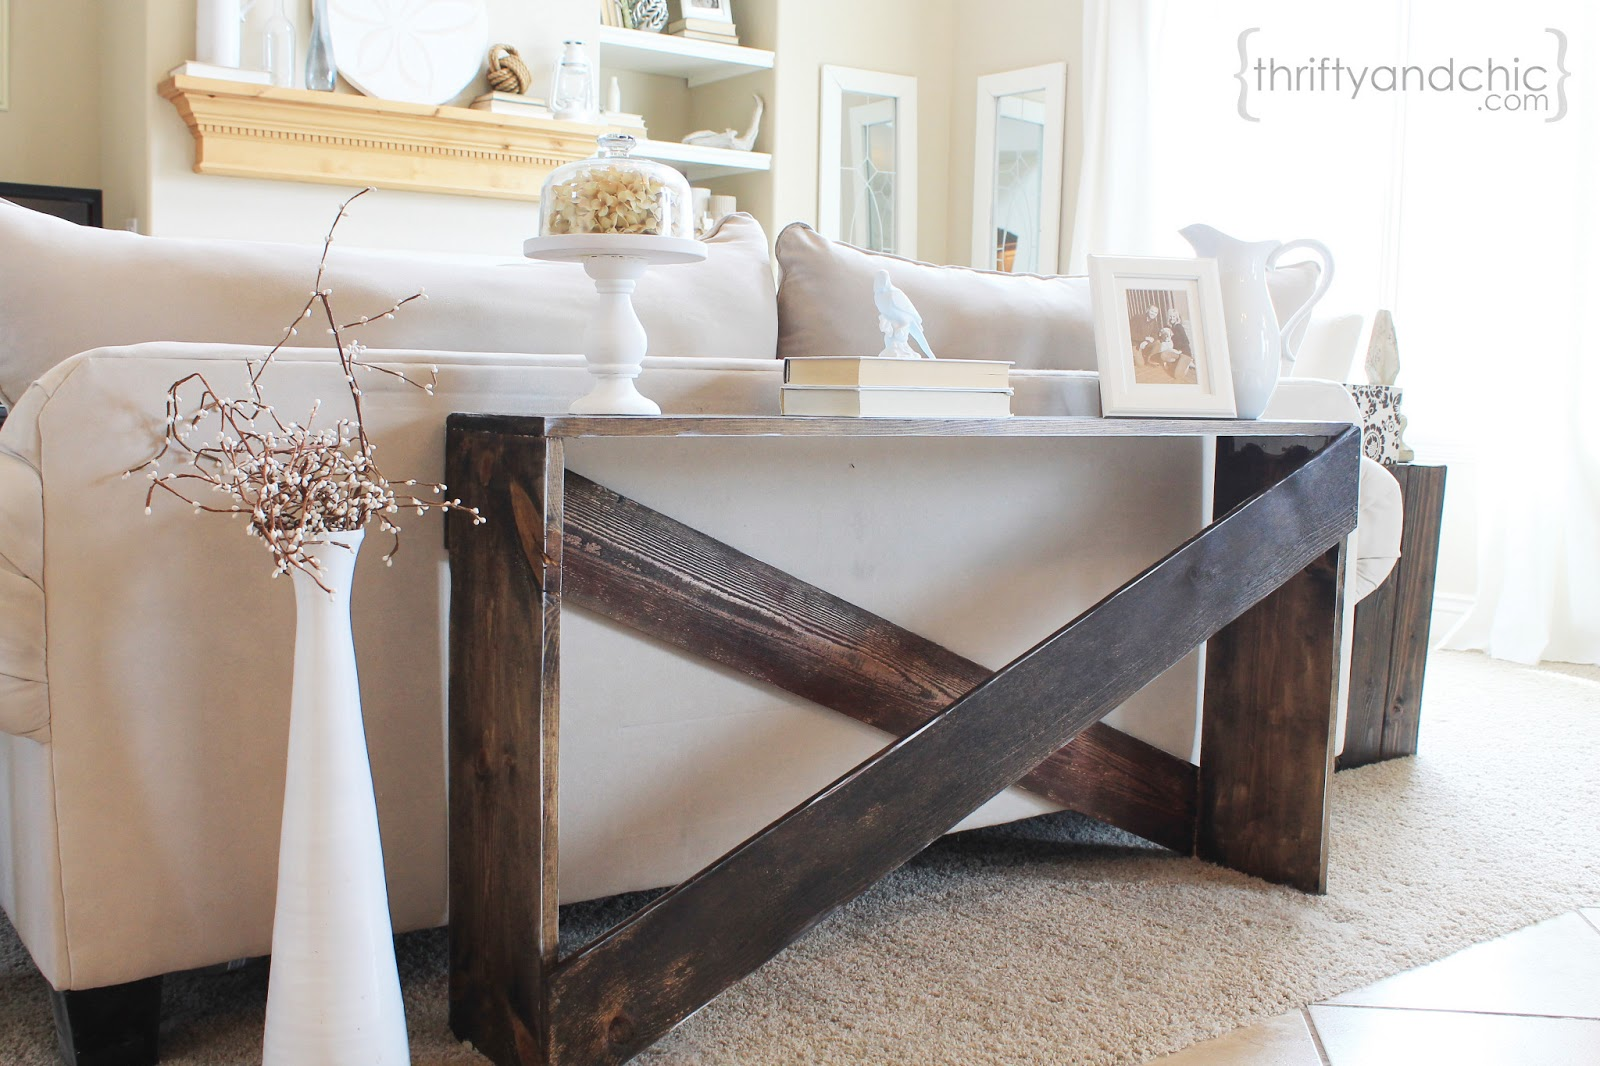 How to make a sofa table from 1 x 6 lumber - Cute And Easy Diy Sofa Table Featured On Remodelaholic Com